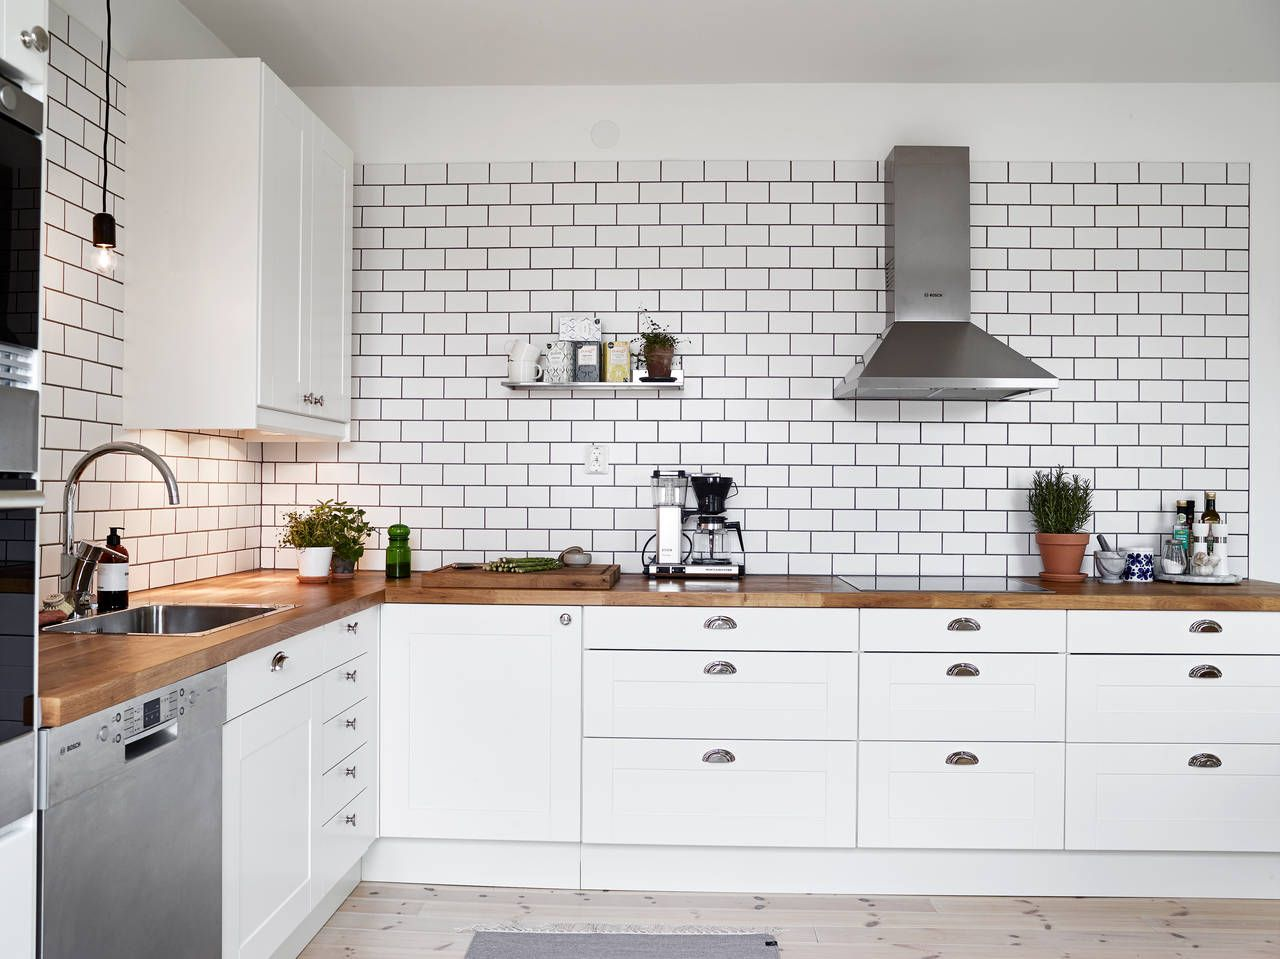 A White Tiles Black Grout Kind Of Kitchen Kitchen Tiles Design